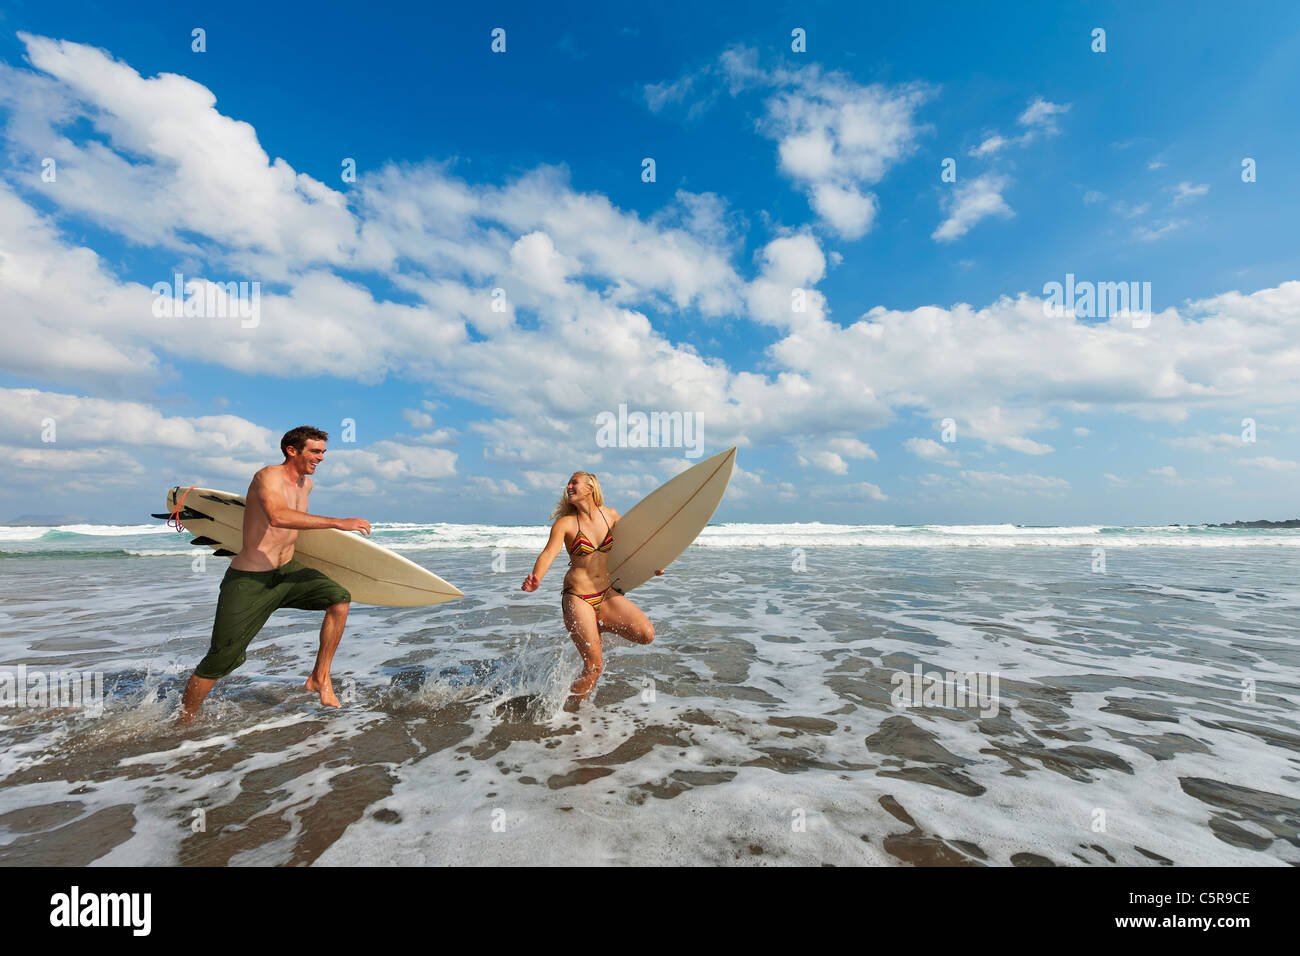 Two surfers having fun running through the surf together. - Stock Image